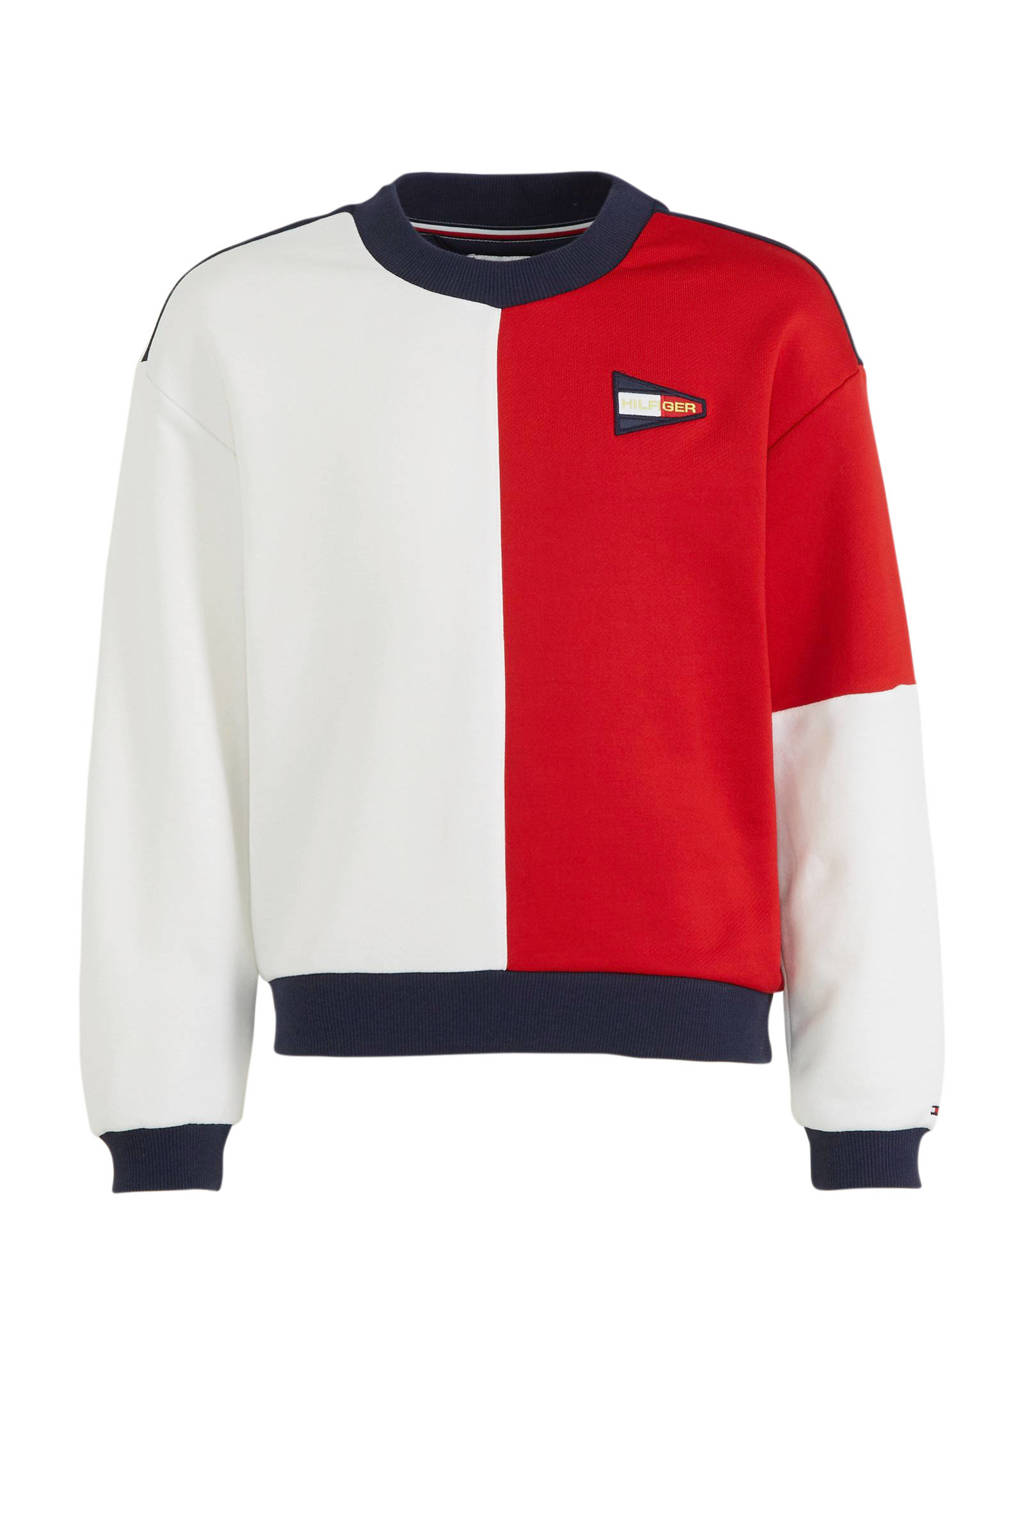 Tommy Hilfiger sweater wit/donkerblauw/rood, Wit/donkerblauw/rood